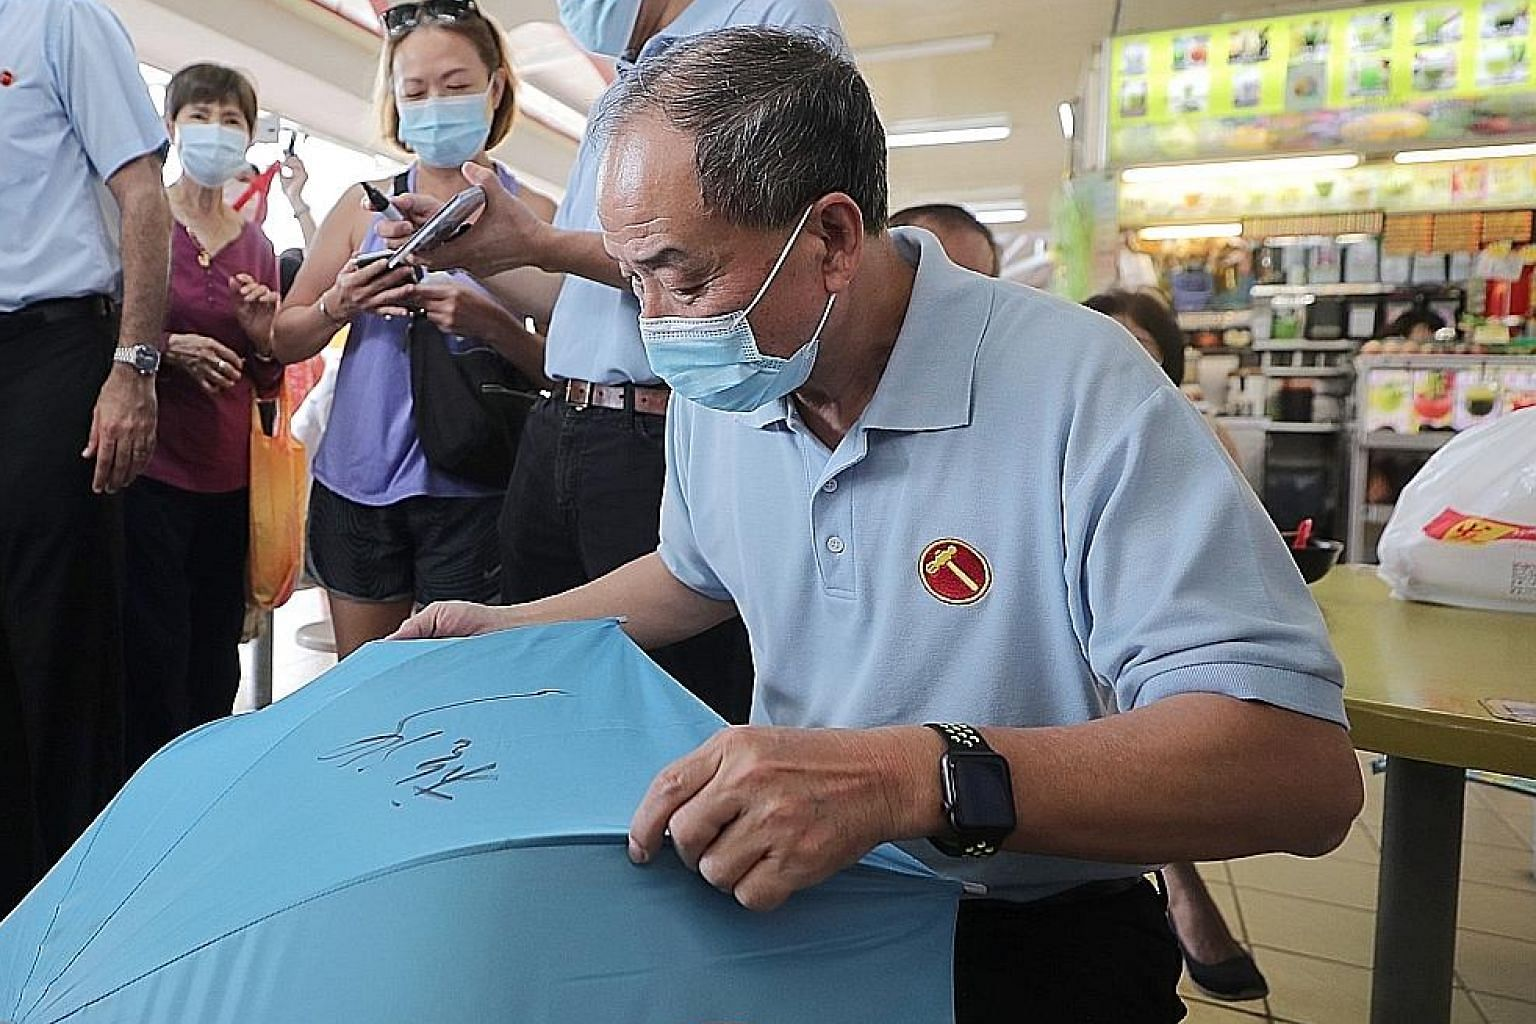 Former Workers' Party chief Low Thia Khiang, who is not standing in this election, autographing a WP umbrella during a visit to Kovan Hougang Market and Food Centre yesterday.